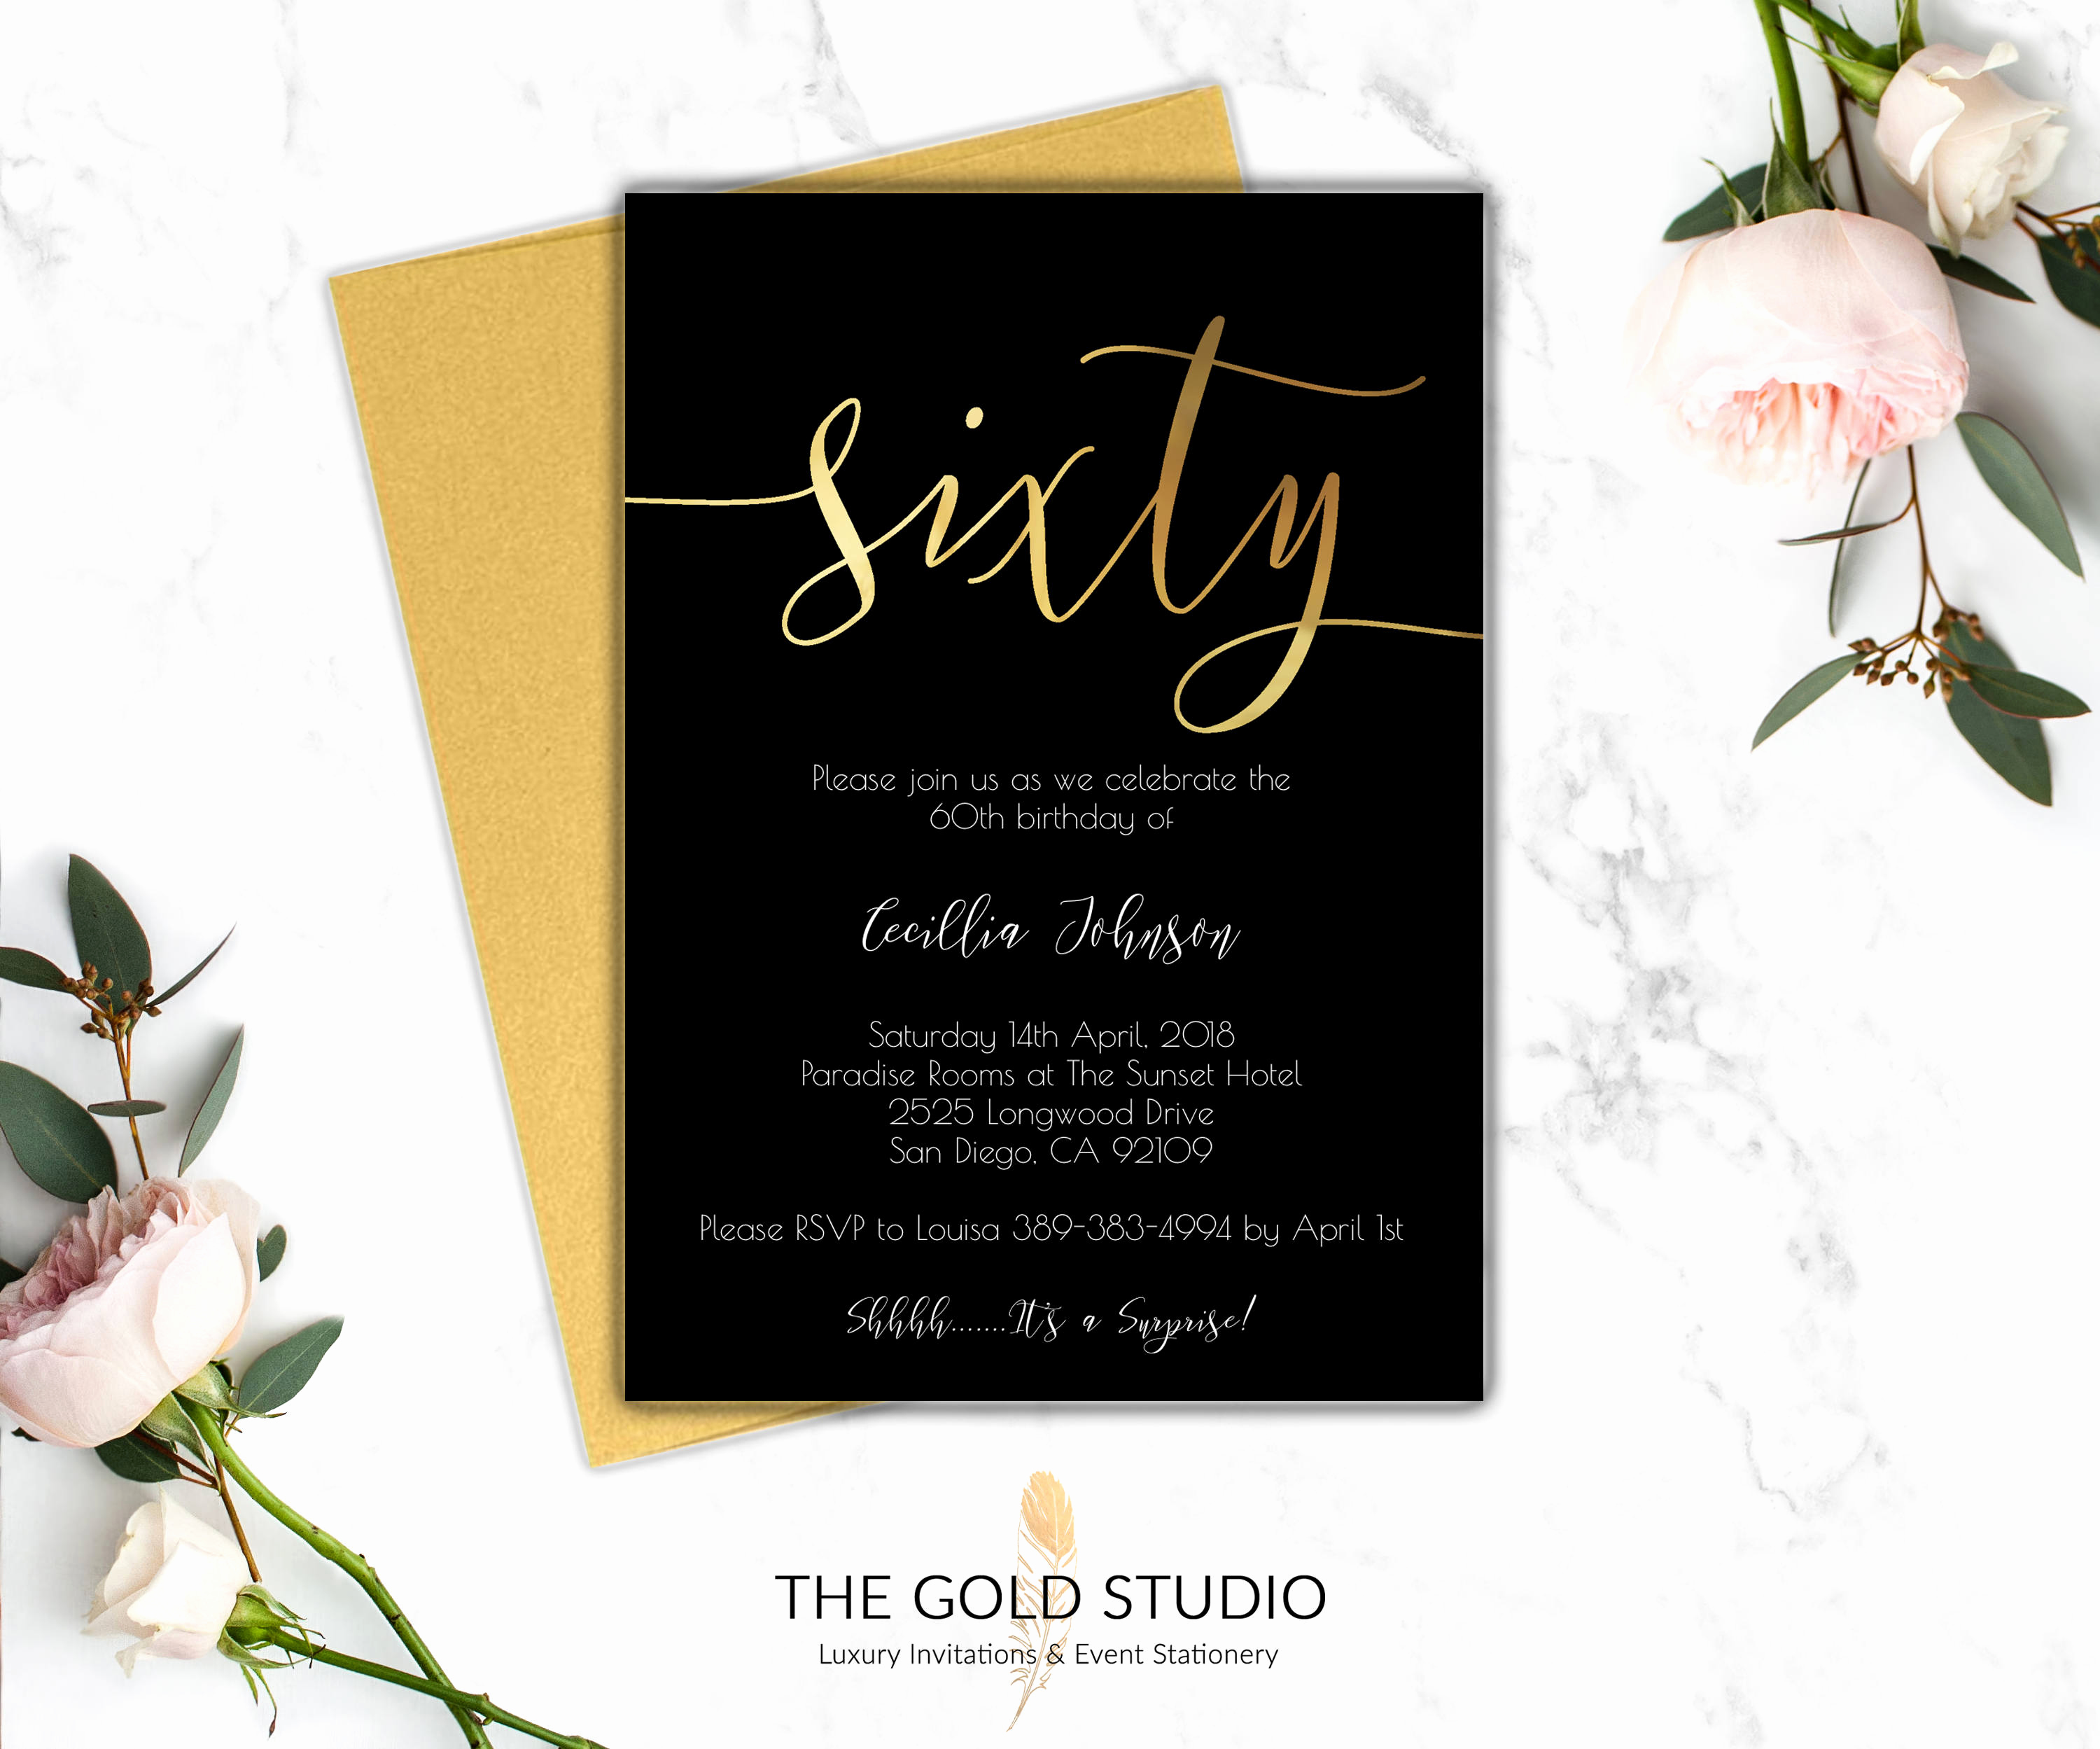 60th Birthday Invitations Template Awesome Tips Special 60th Birthday Invitations for Your Special